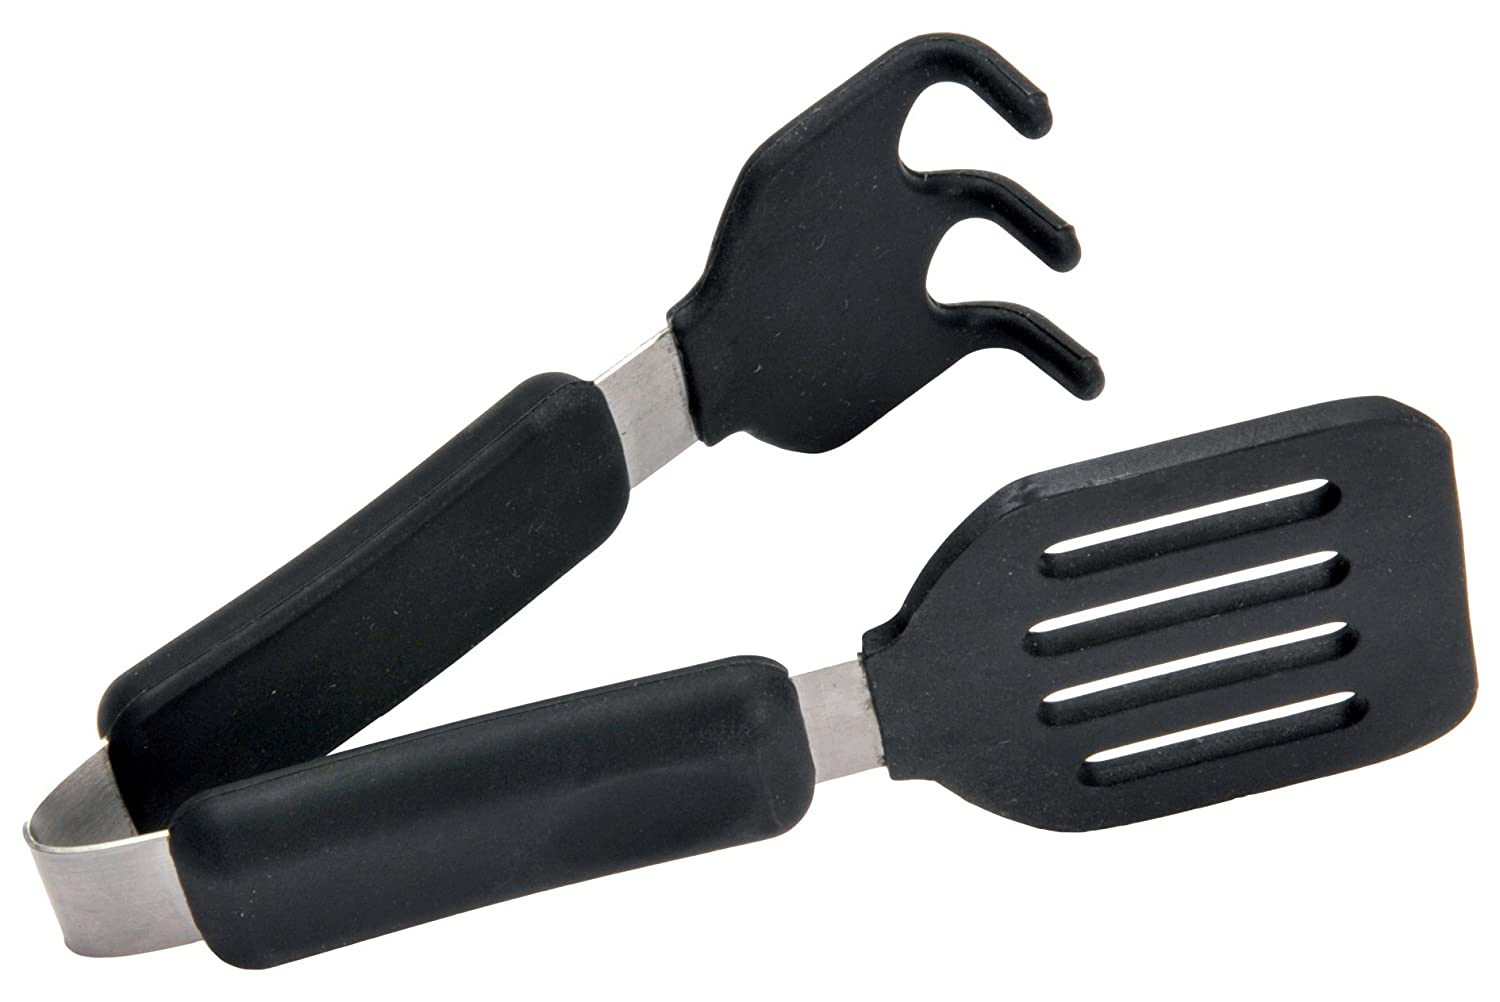 Norpro Grip-EZ Grab and Lift Silicone Tongs